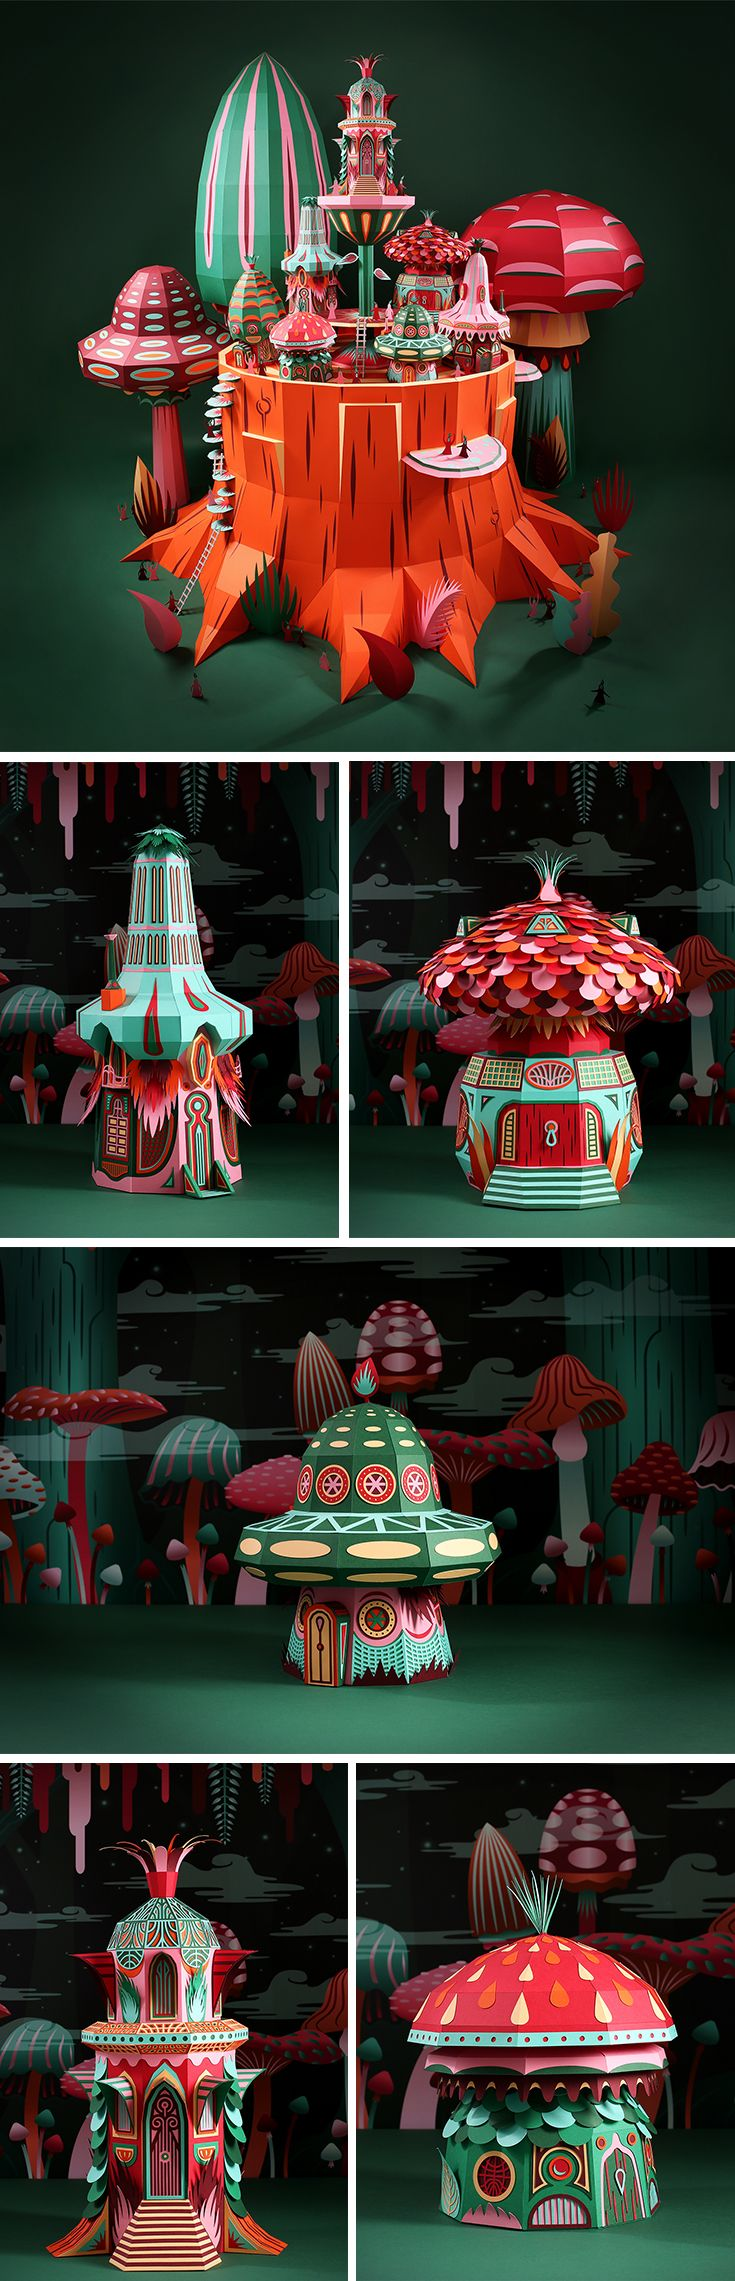 Click for more pics! Fantastic Miniature Worlds Bursting with Color for Hermès Window Display in Dubai